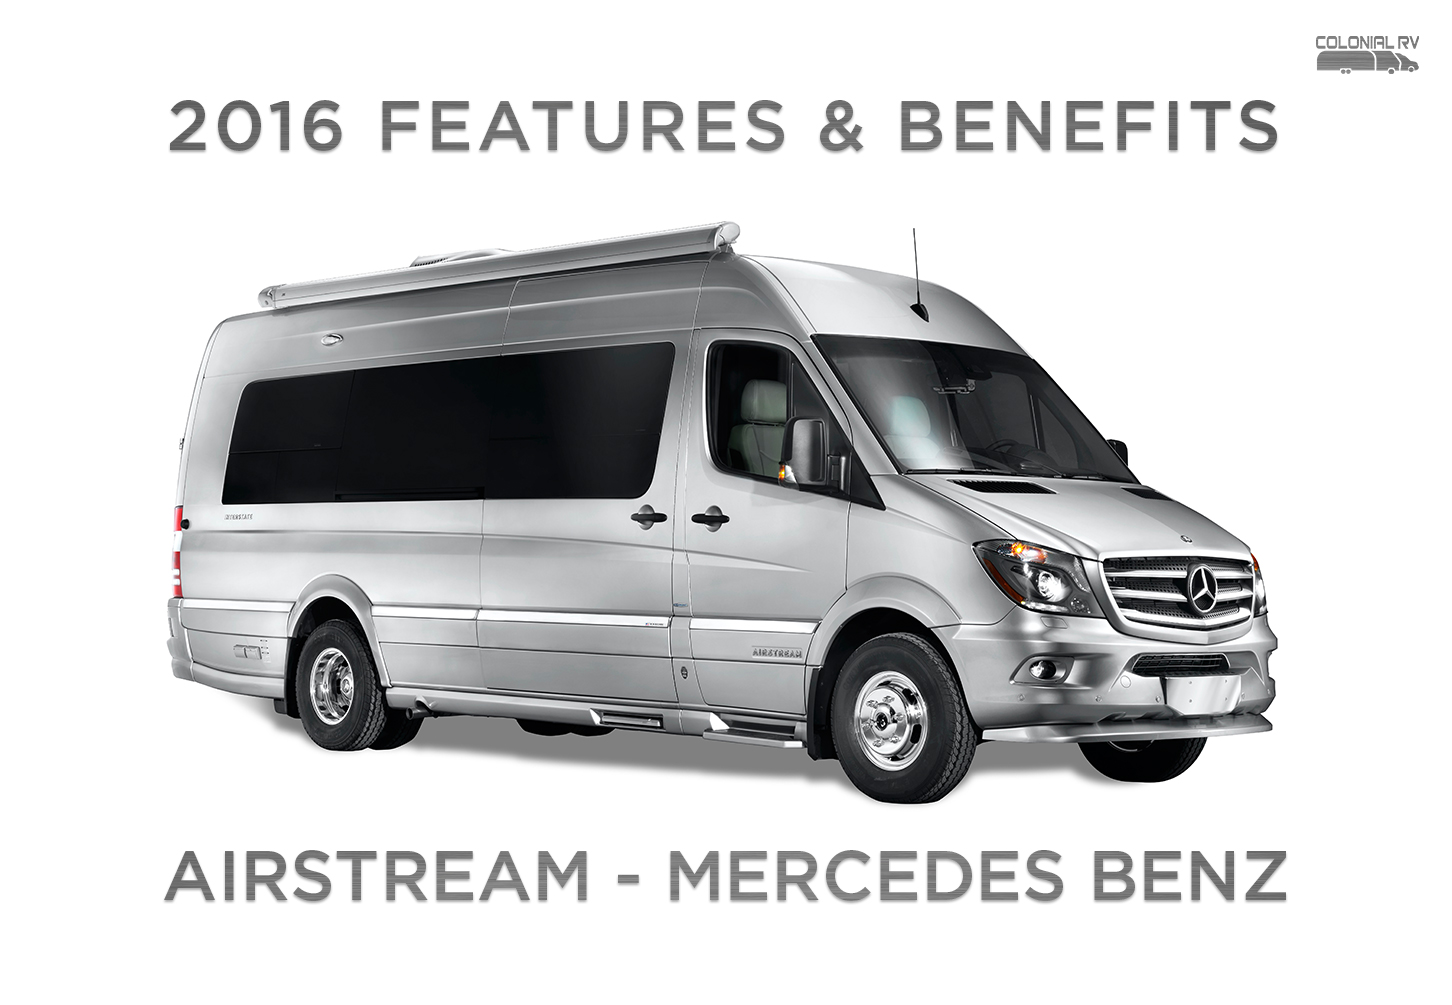 2016 airstream interstate mercedes benz sprinter features for Mercedes benz airstream interstate